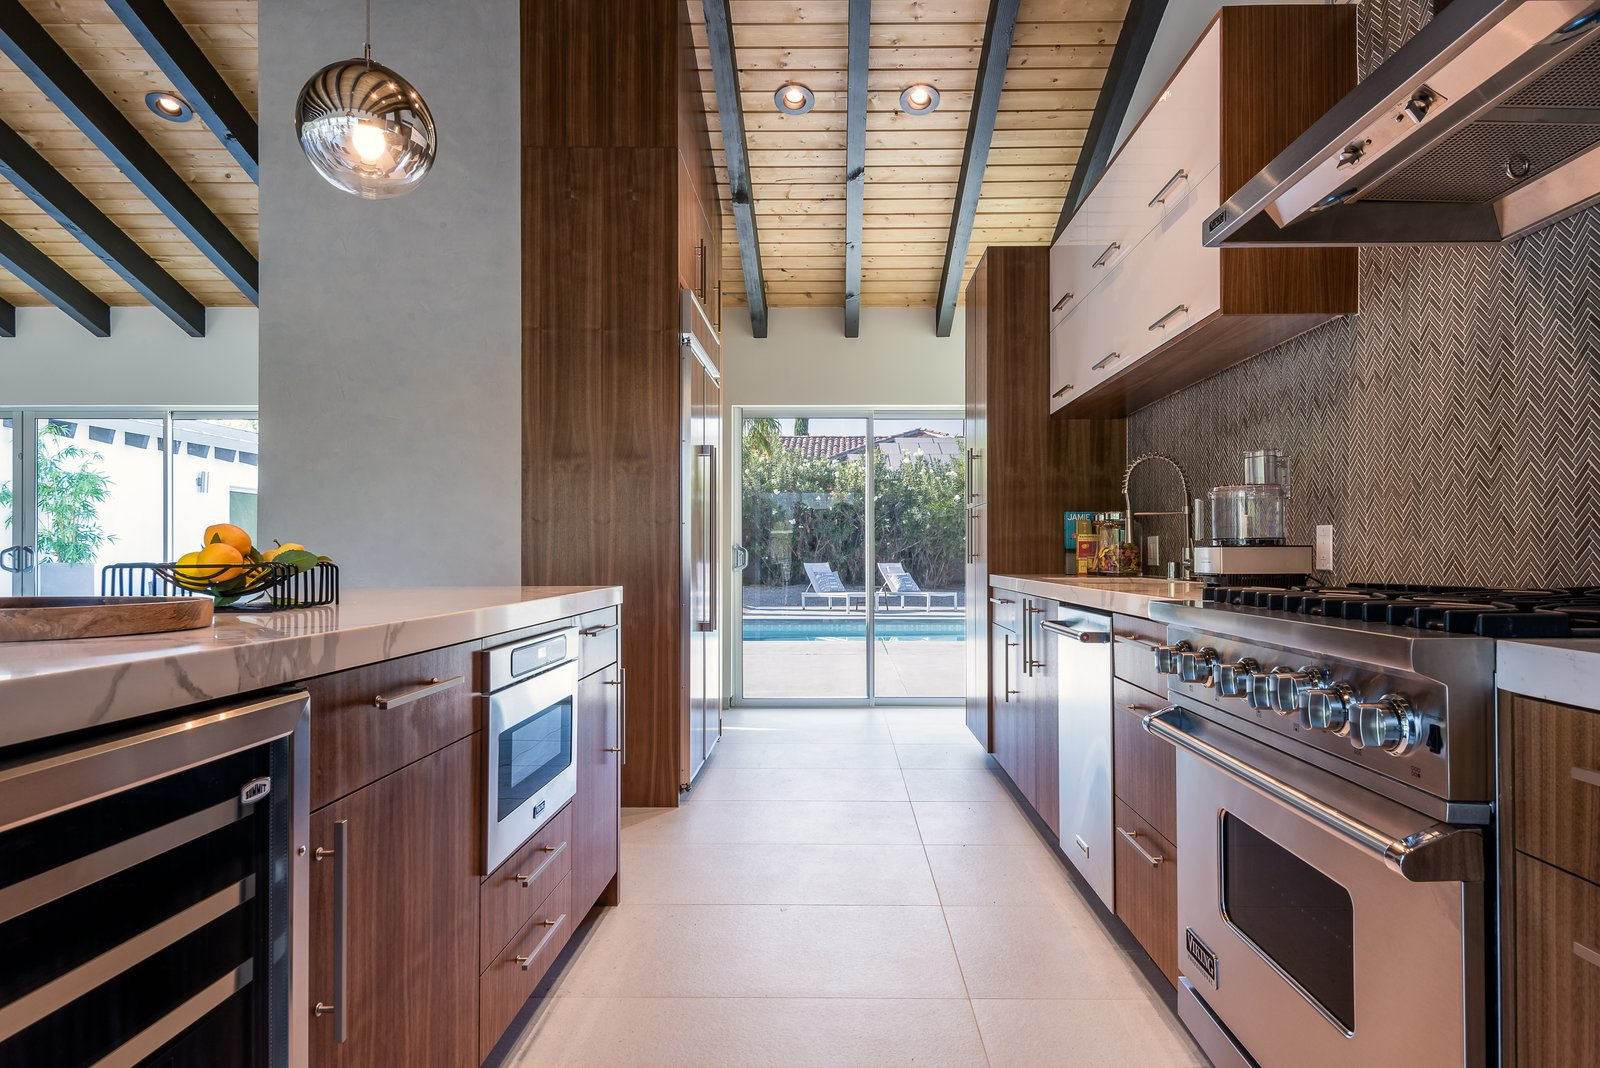 Kitchen, Ceiling, Wood, Porcelain Tile, Range, Recessed, Range Hood, Pendant, and White The kitchen also boasts spectacular views of the mountains and easy access to the pool, spa, fire pit, and outdoor kitchen.  Kitchen Porcelain Tile Range Hood Wood Photos from An Updated Palm Springs Estate Lists For $2.4M